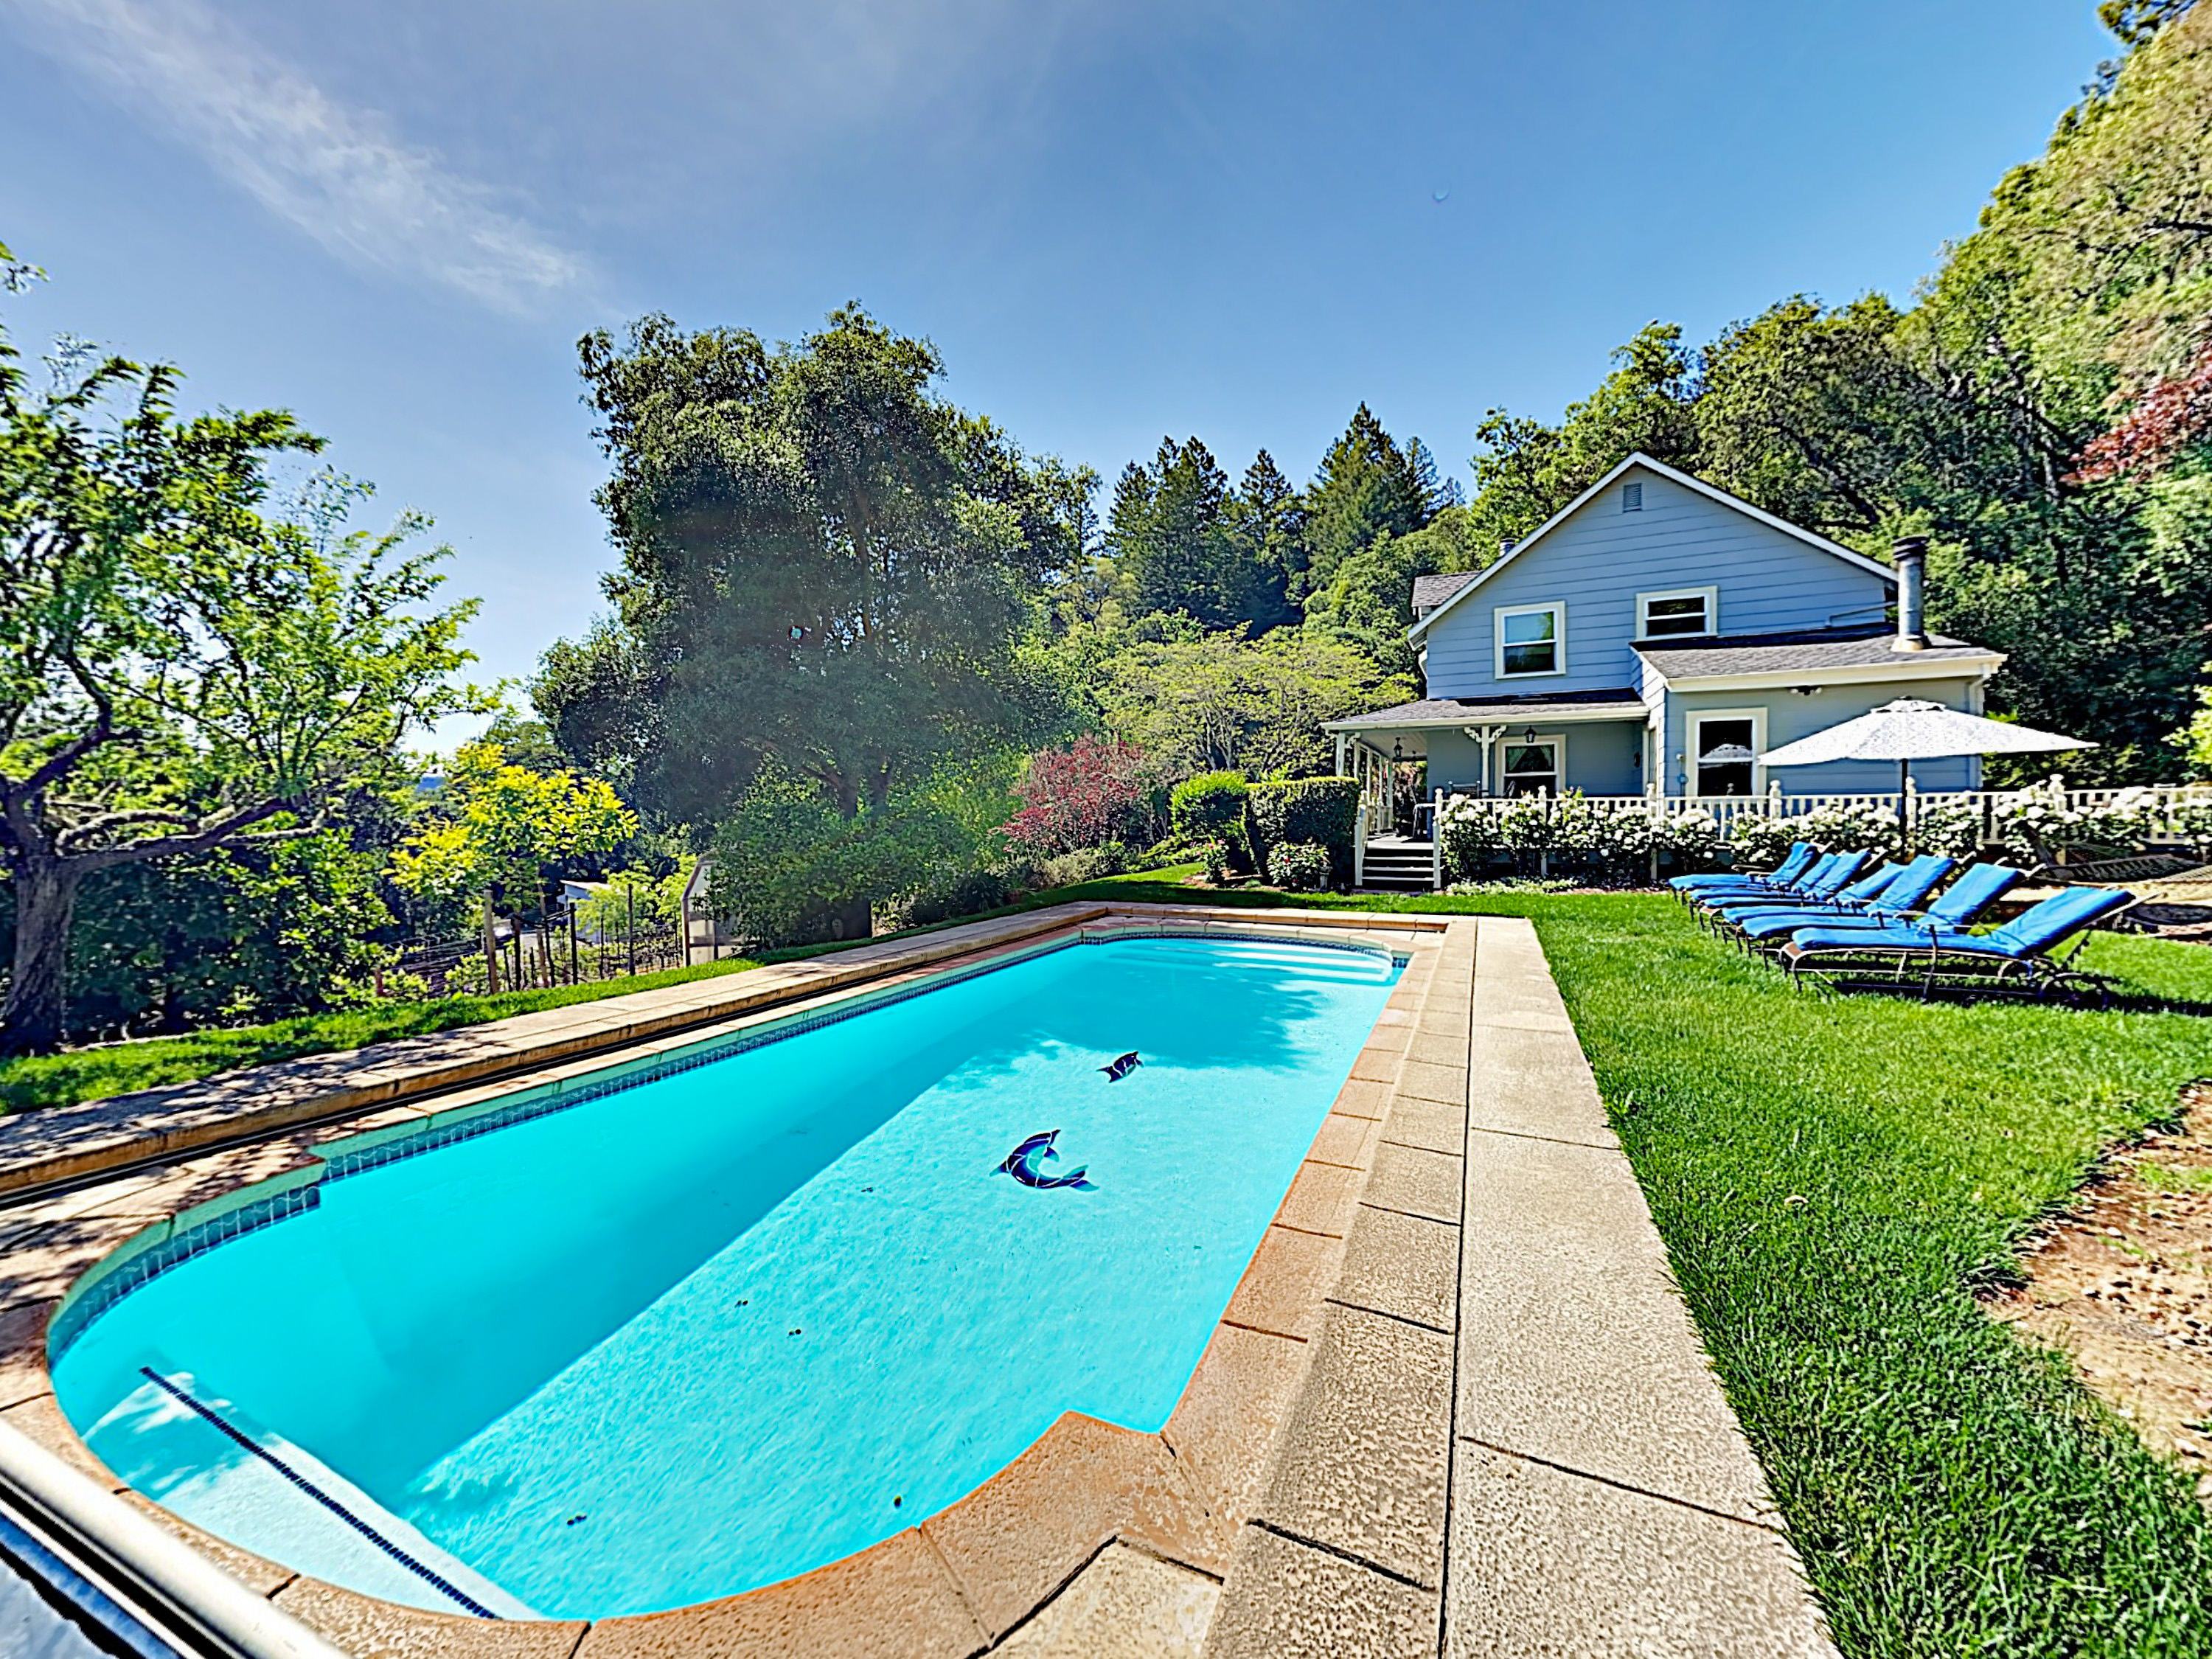 Healdsburg CA Vacation Rental Welcome to Healdsburg!